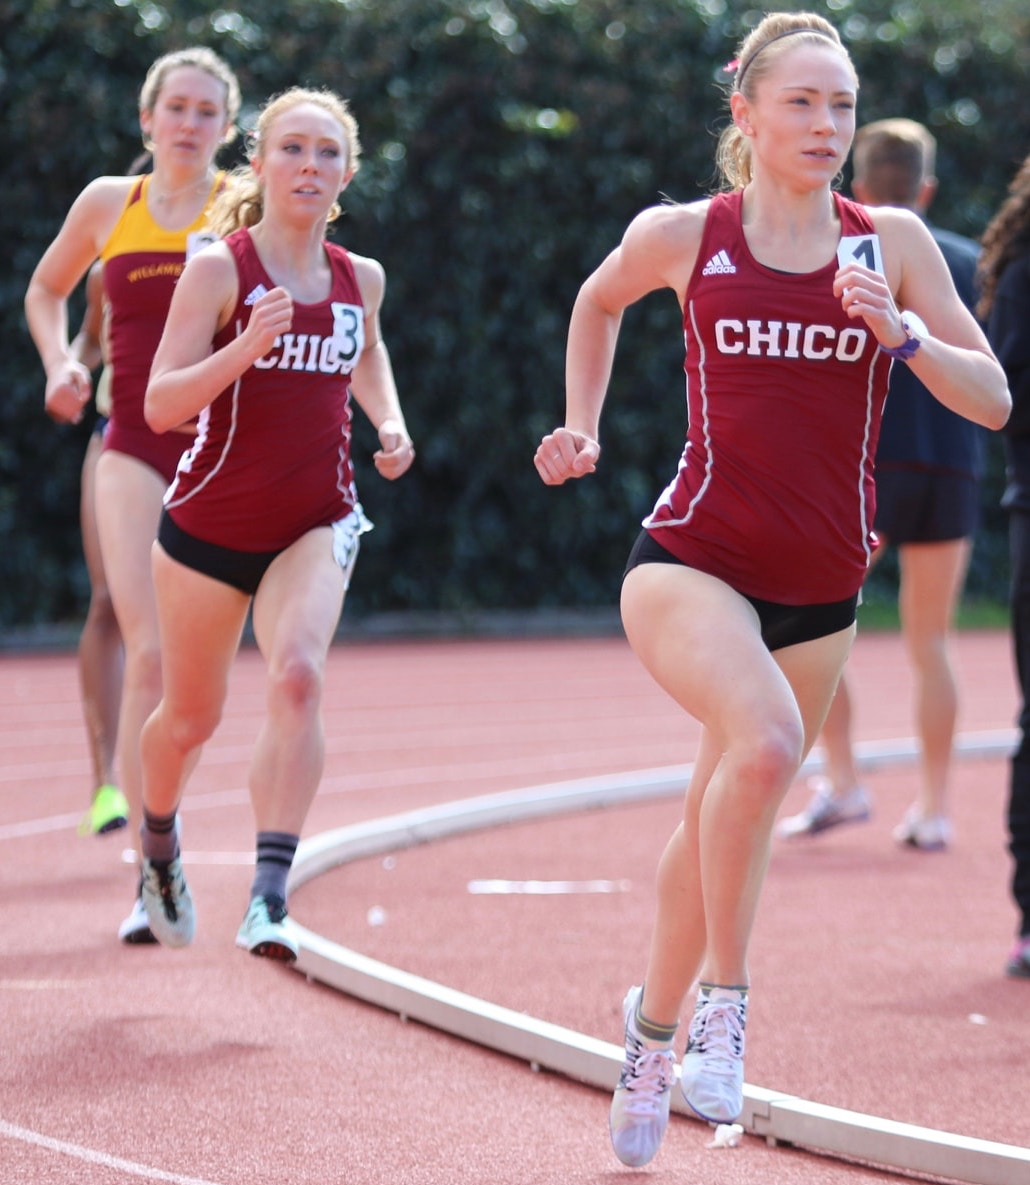 Alex Burkhart and Alexandria Tucker participate in the 5,000 meter run. Burkhart finished sixth in the 5,000 at the Portland Twilight while Tucker finished 13th. Photo credit: Gary Towne